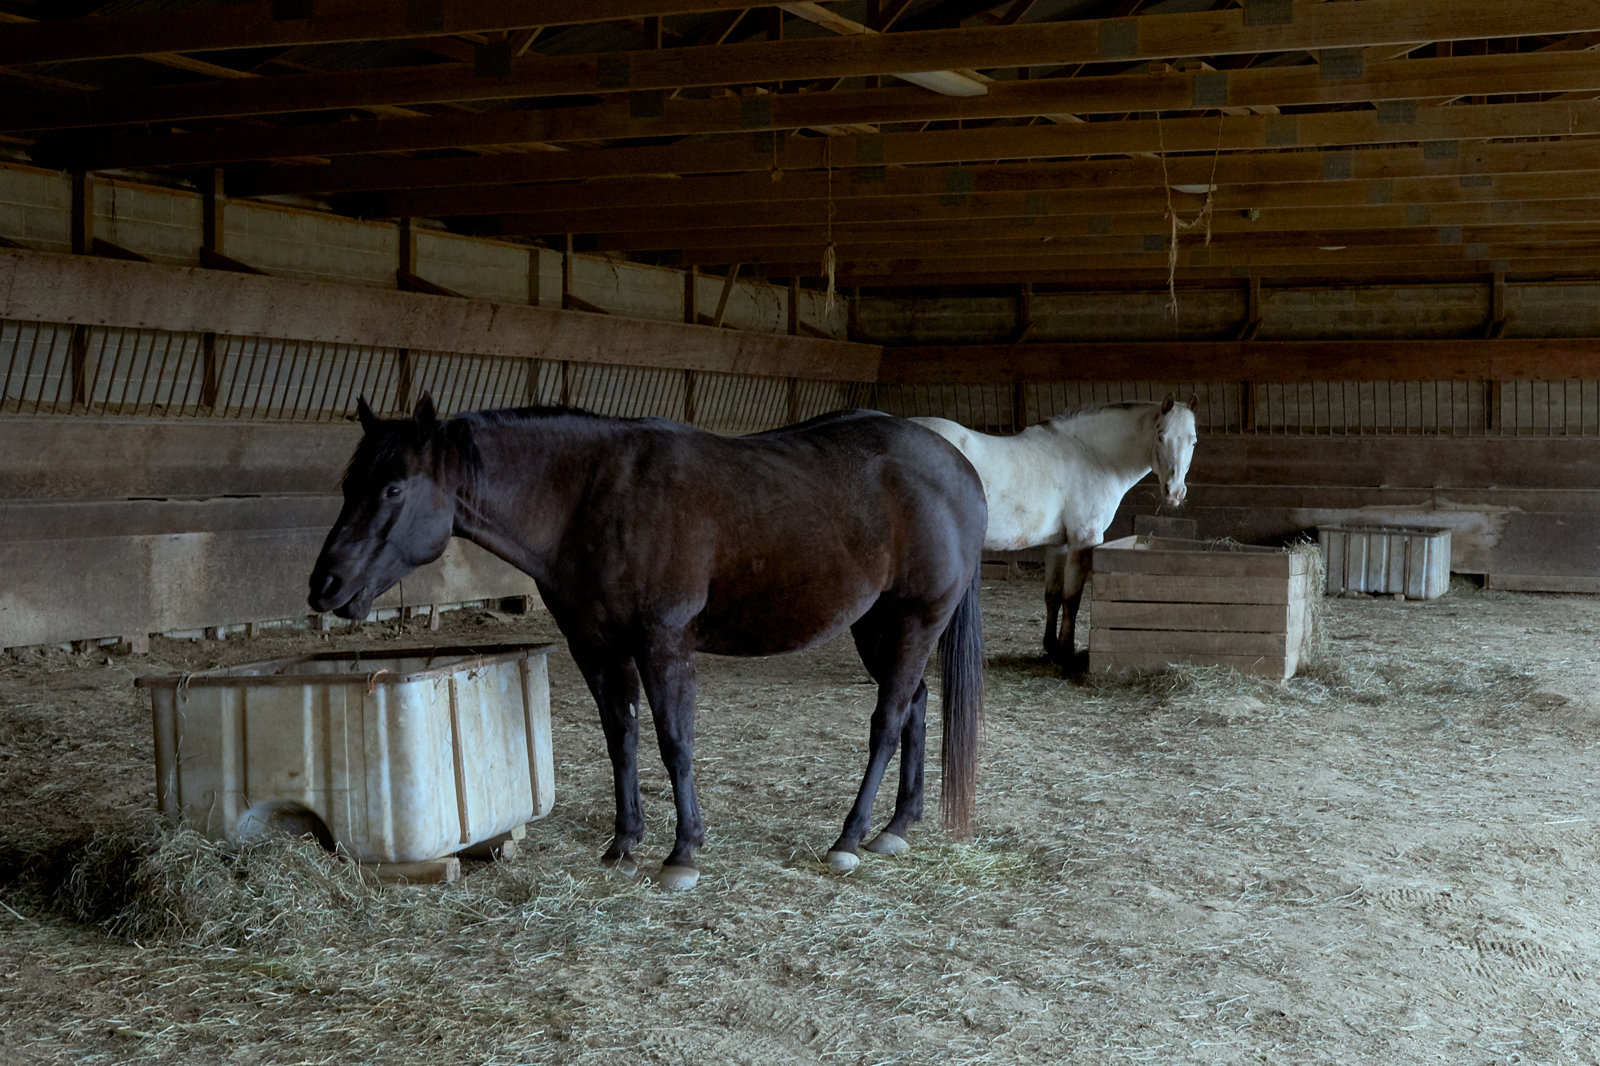 Big Sky Horse Farm, Carlisle, Pennsylvania, Documentary photography